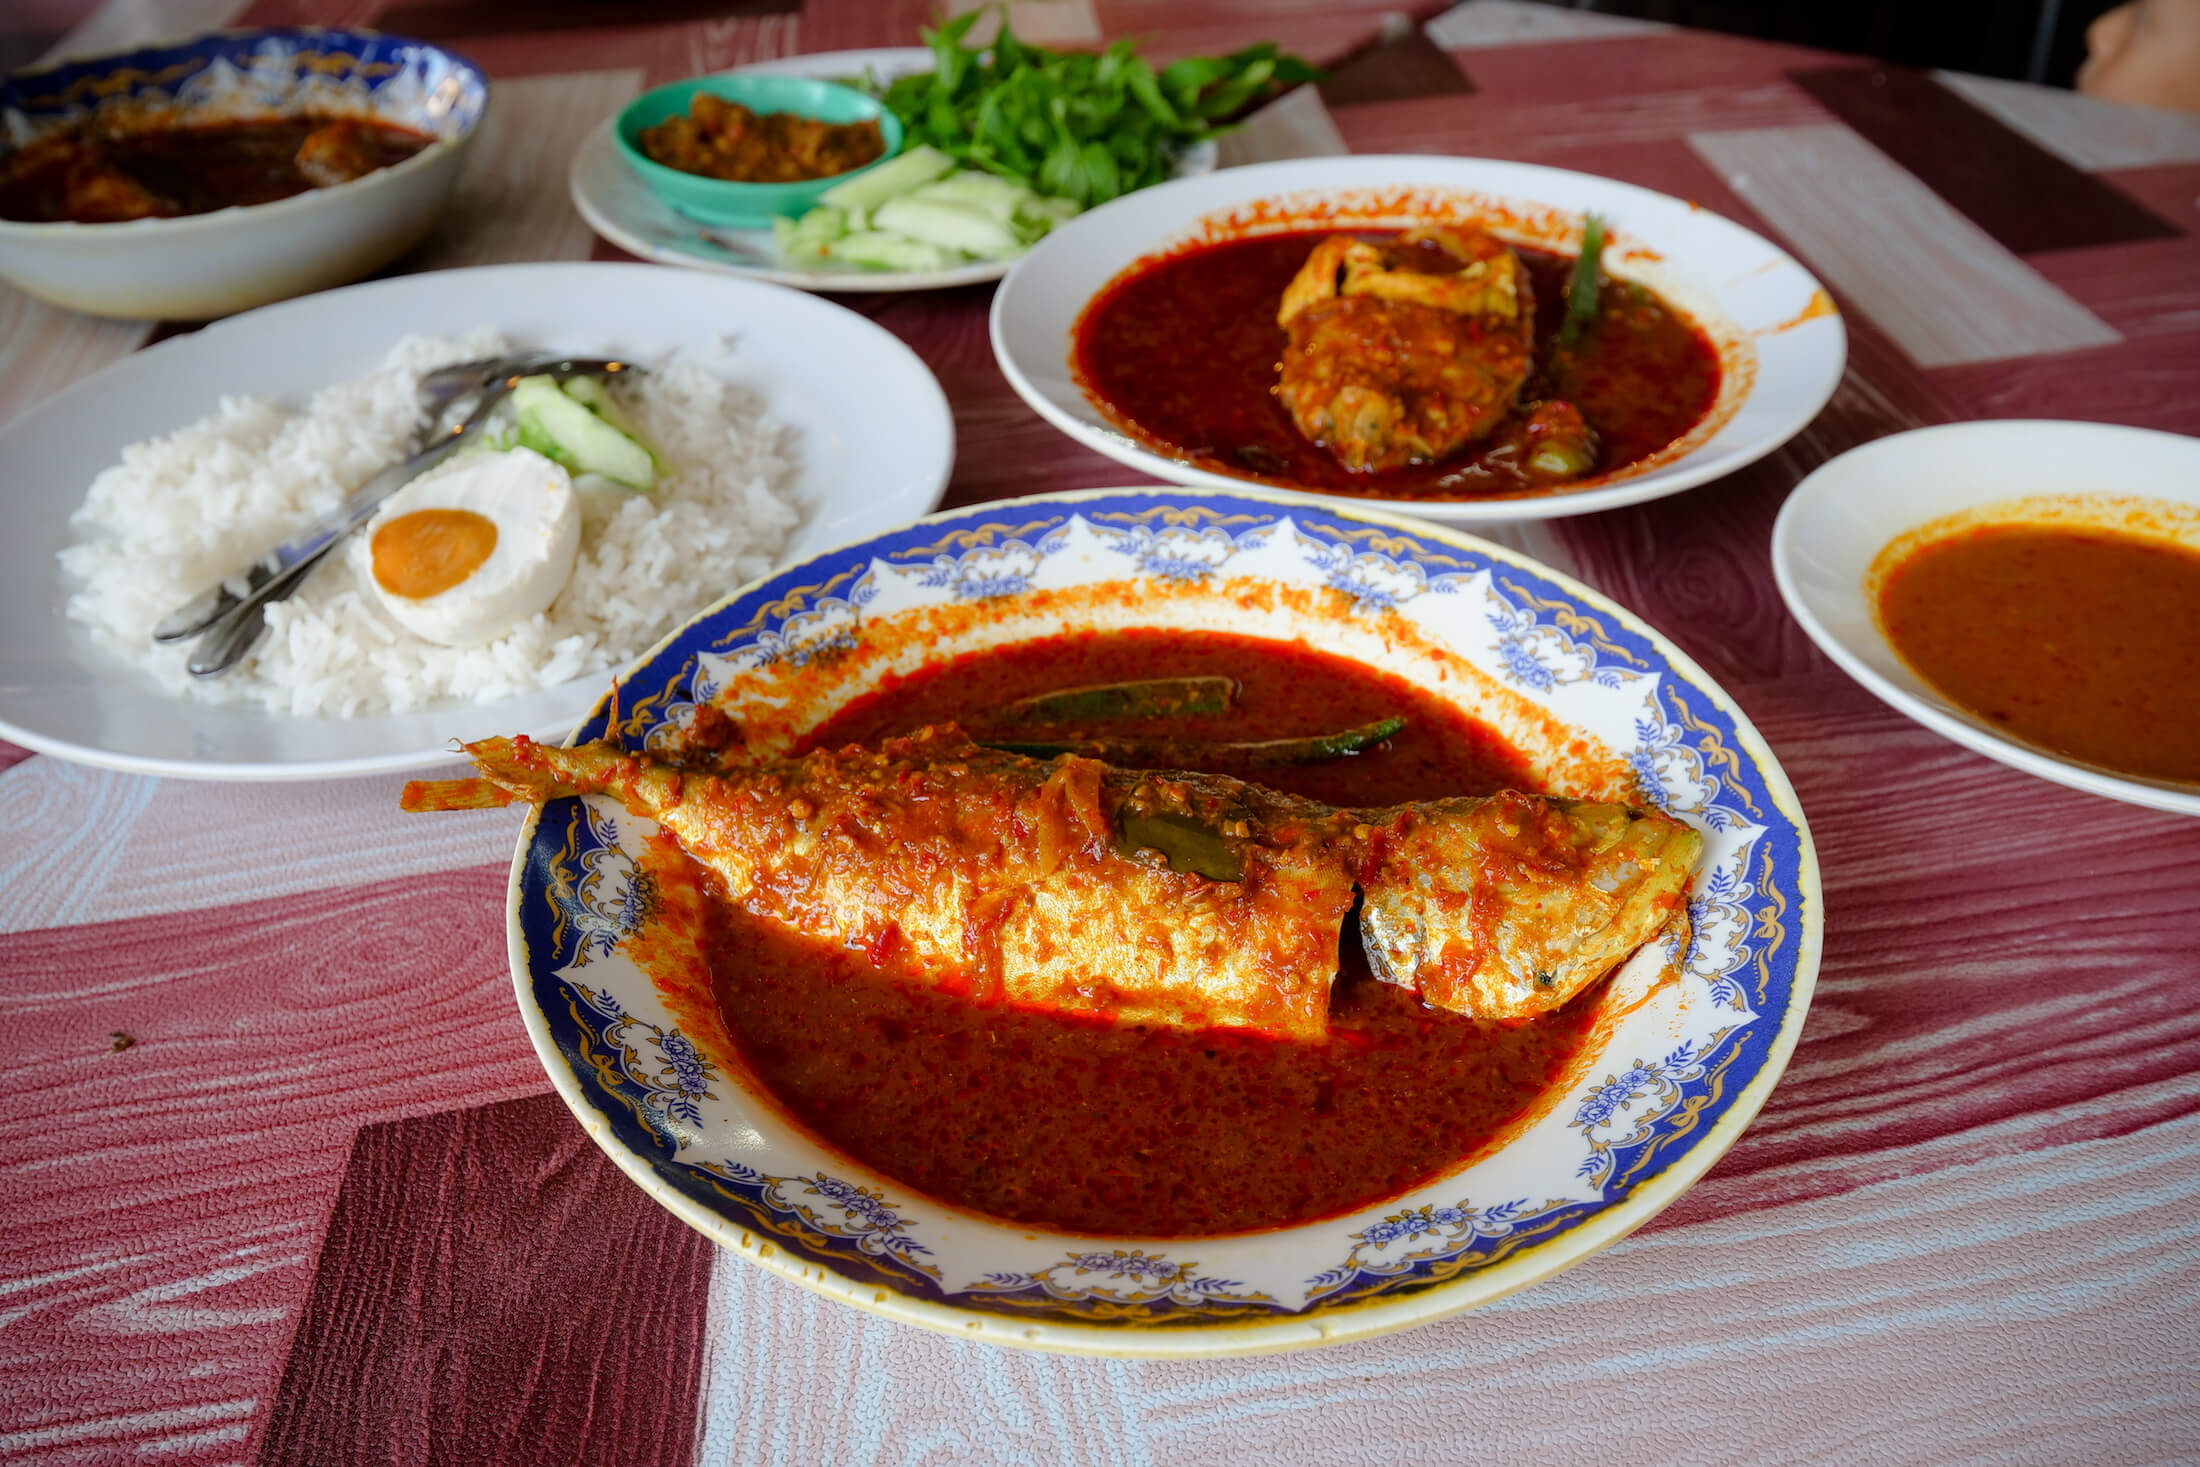 Asam Pedas Pakman is one of the best restaurants in Melaka for authentic Malay local food